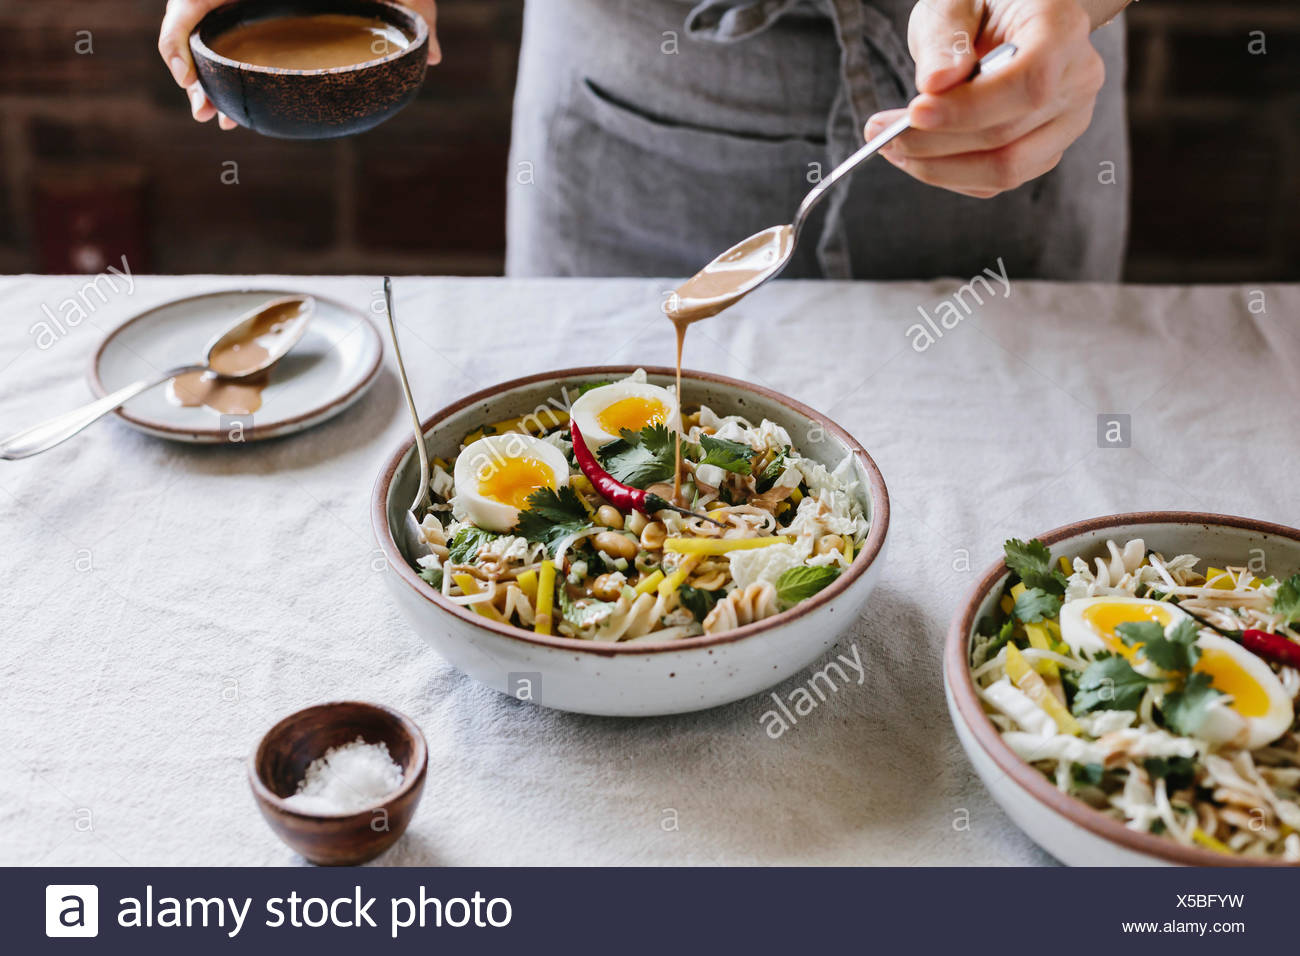 A woman is drizzling a veggie bowl with warm peanut dressing photographed from the front view. - Stock Image